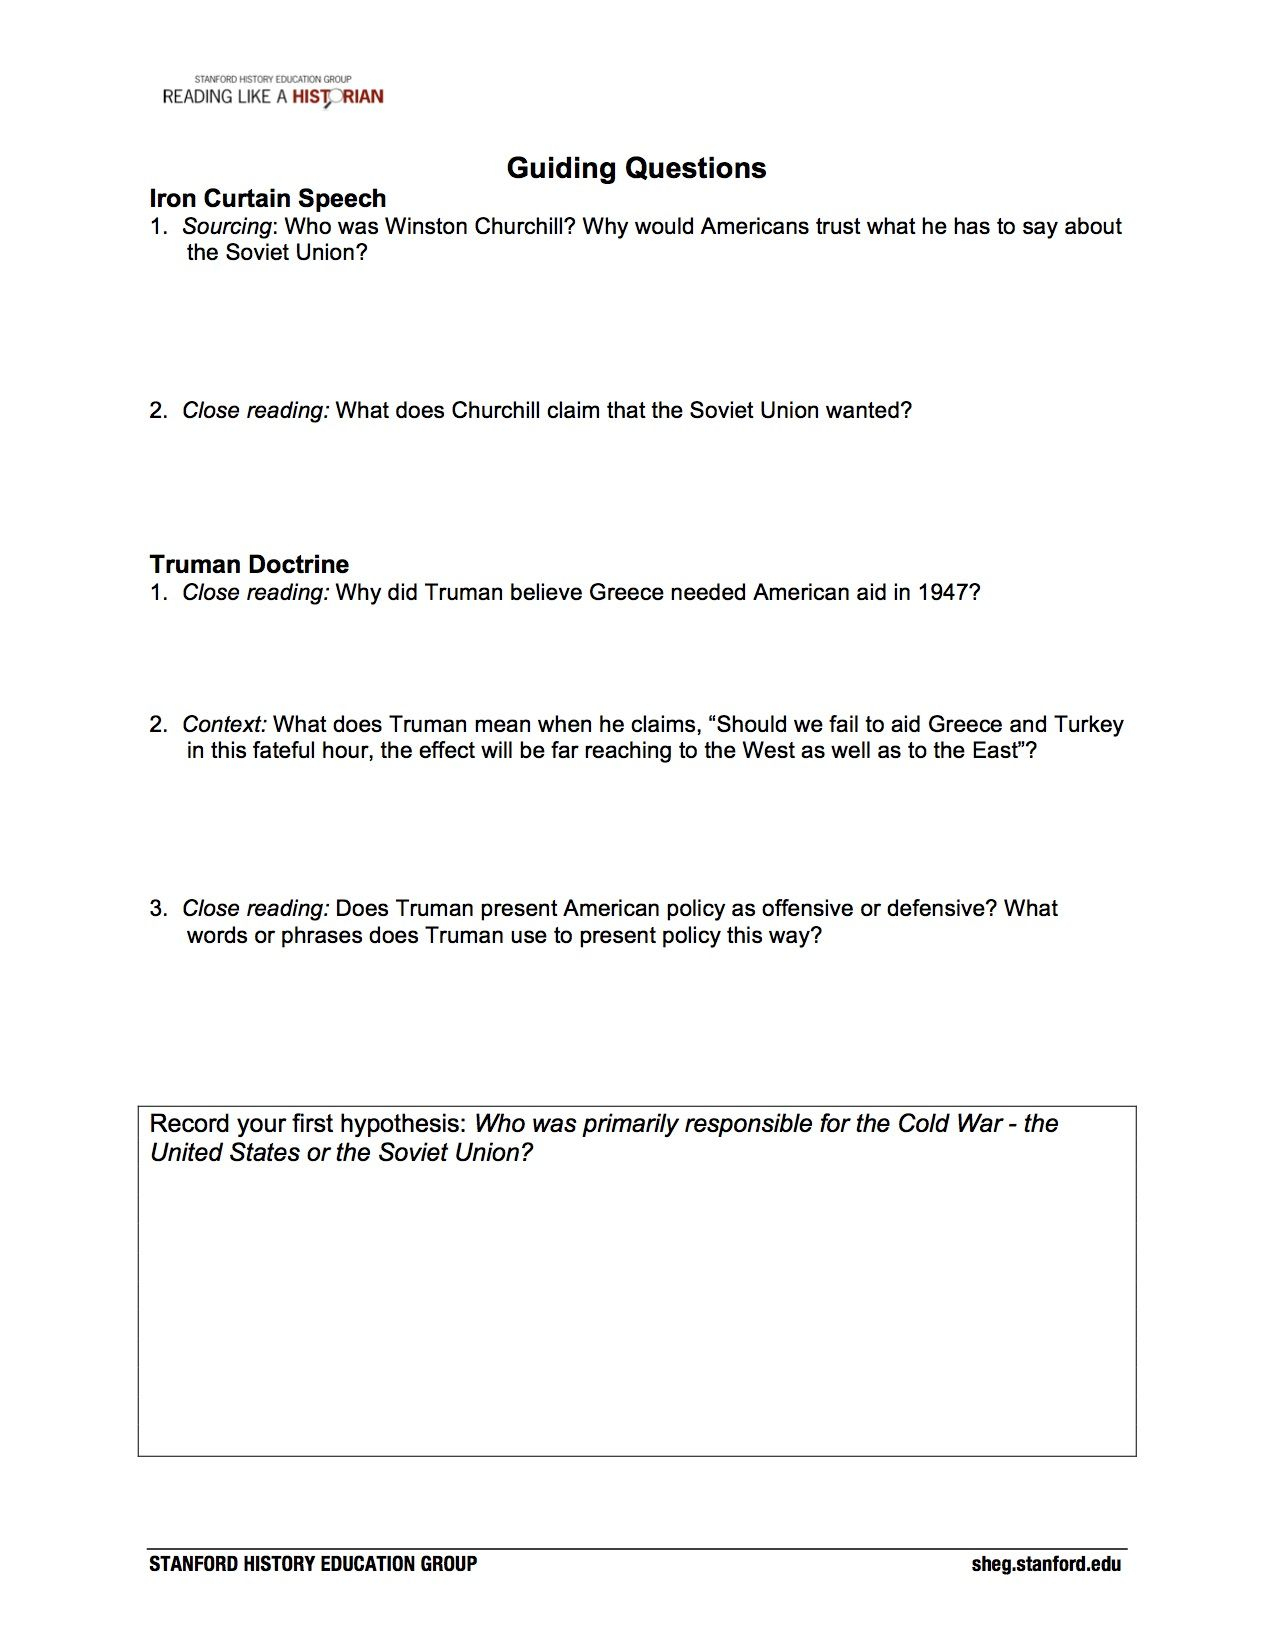 Who Was Primarily Responsible For The Cold War: The United States Or | Cold War Printable Worksheets